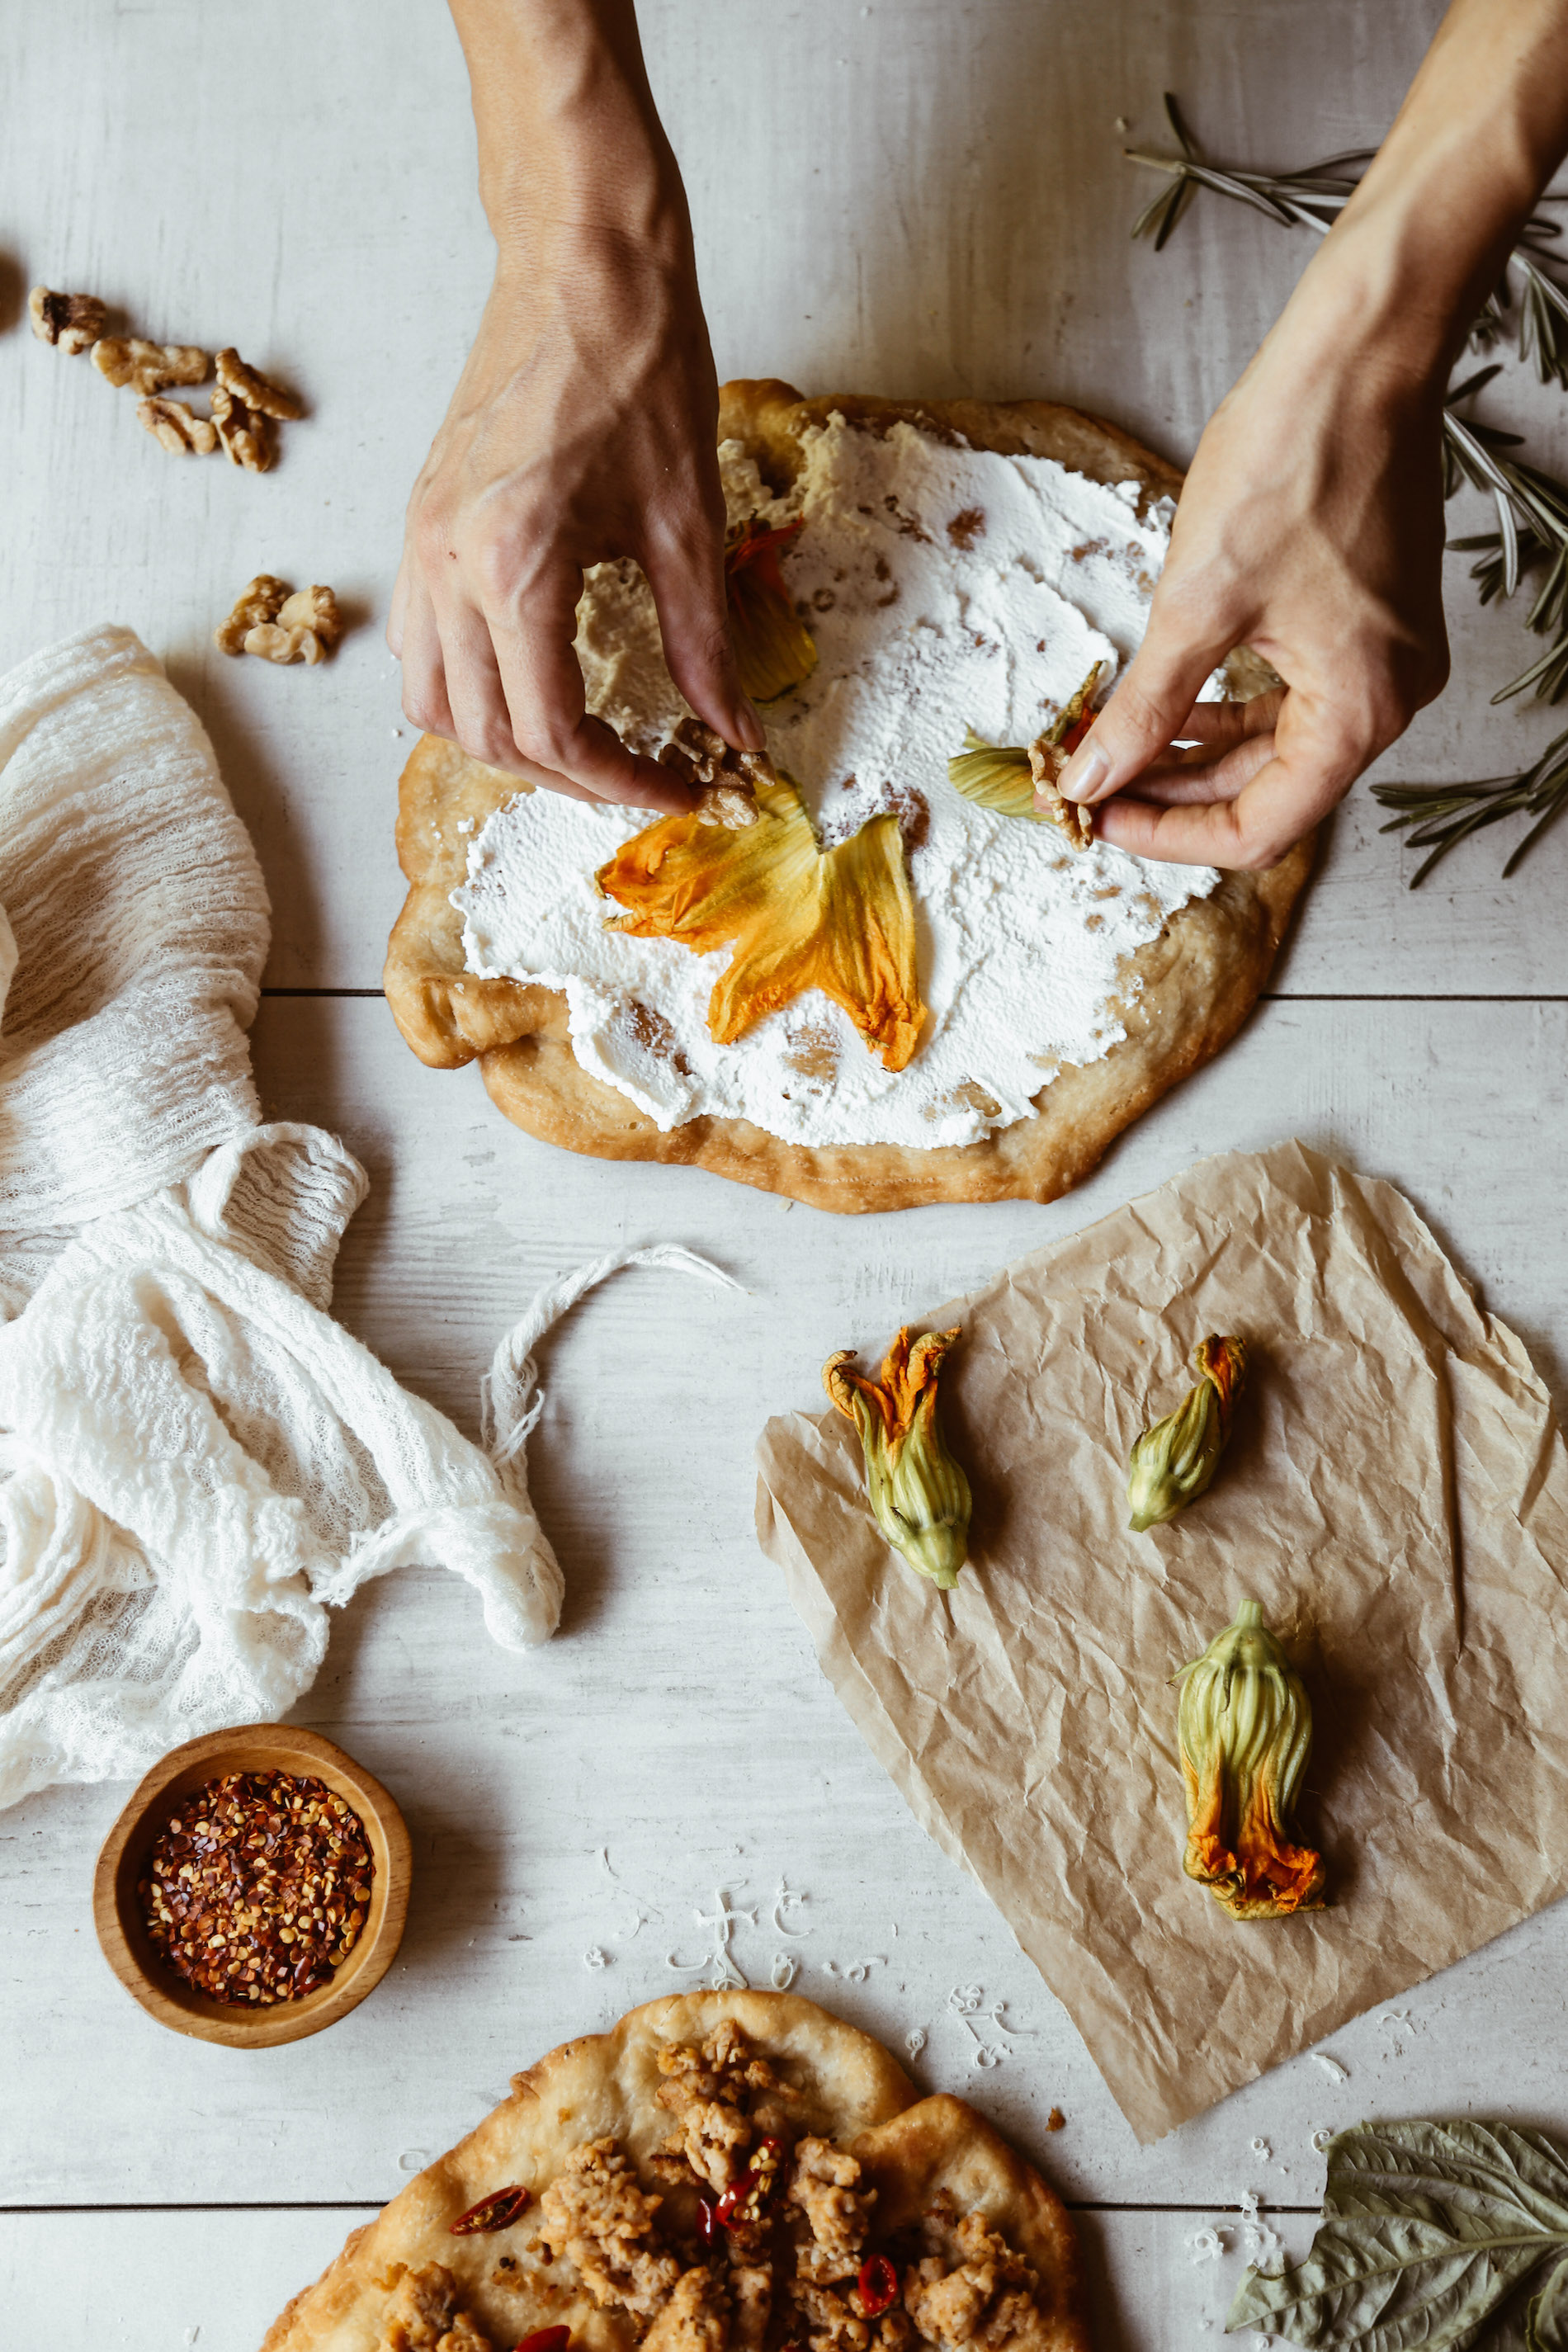 fried pizza with squash blossoms-5.jpg